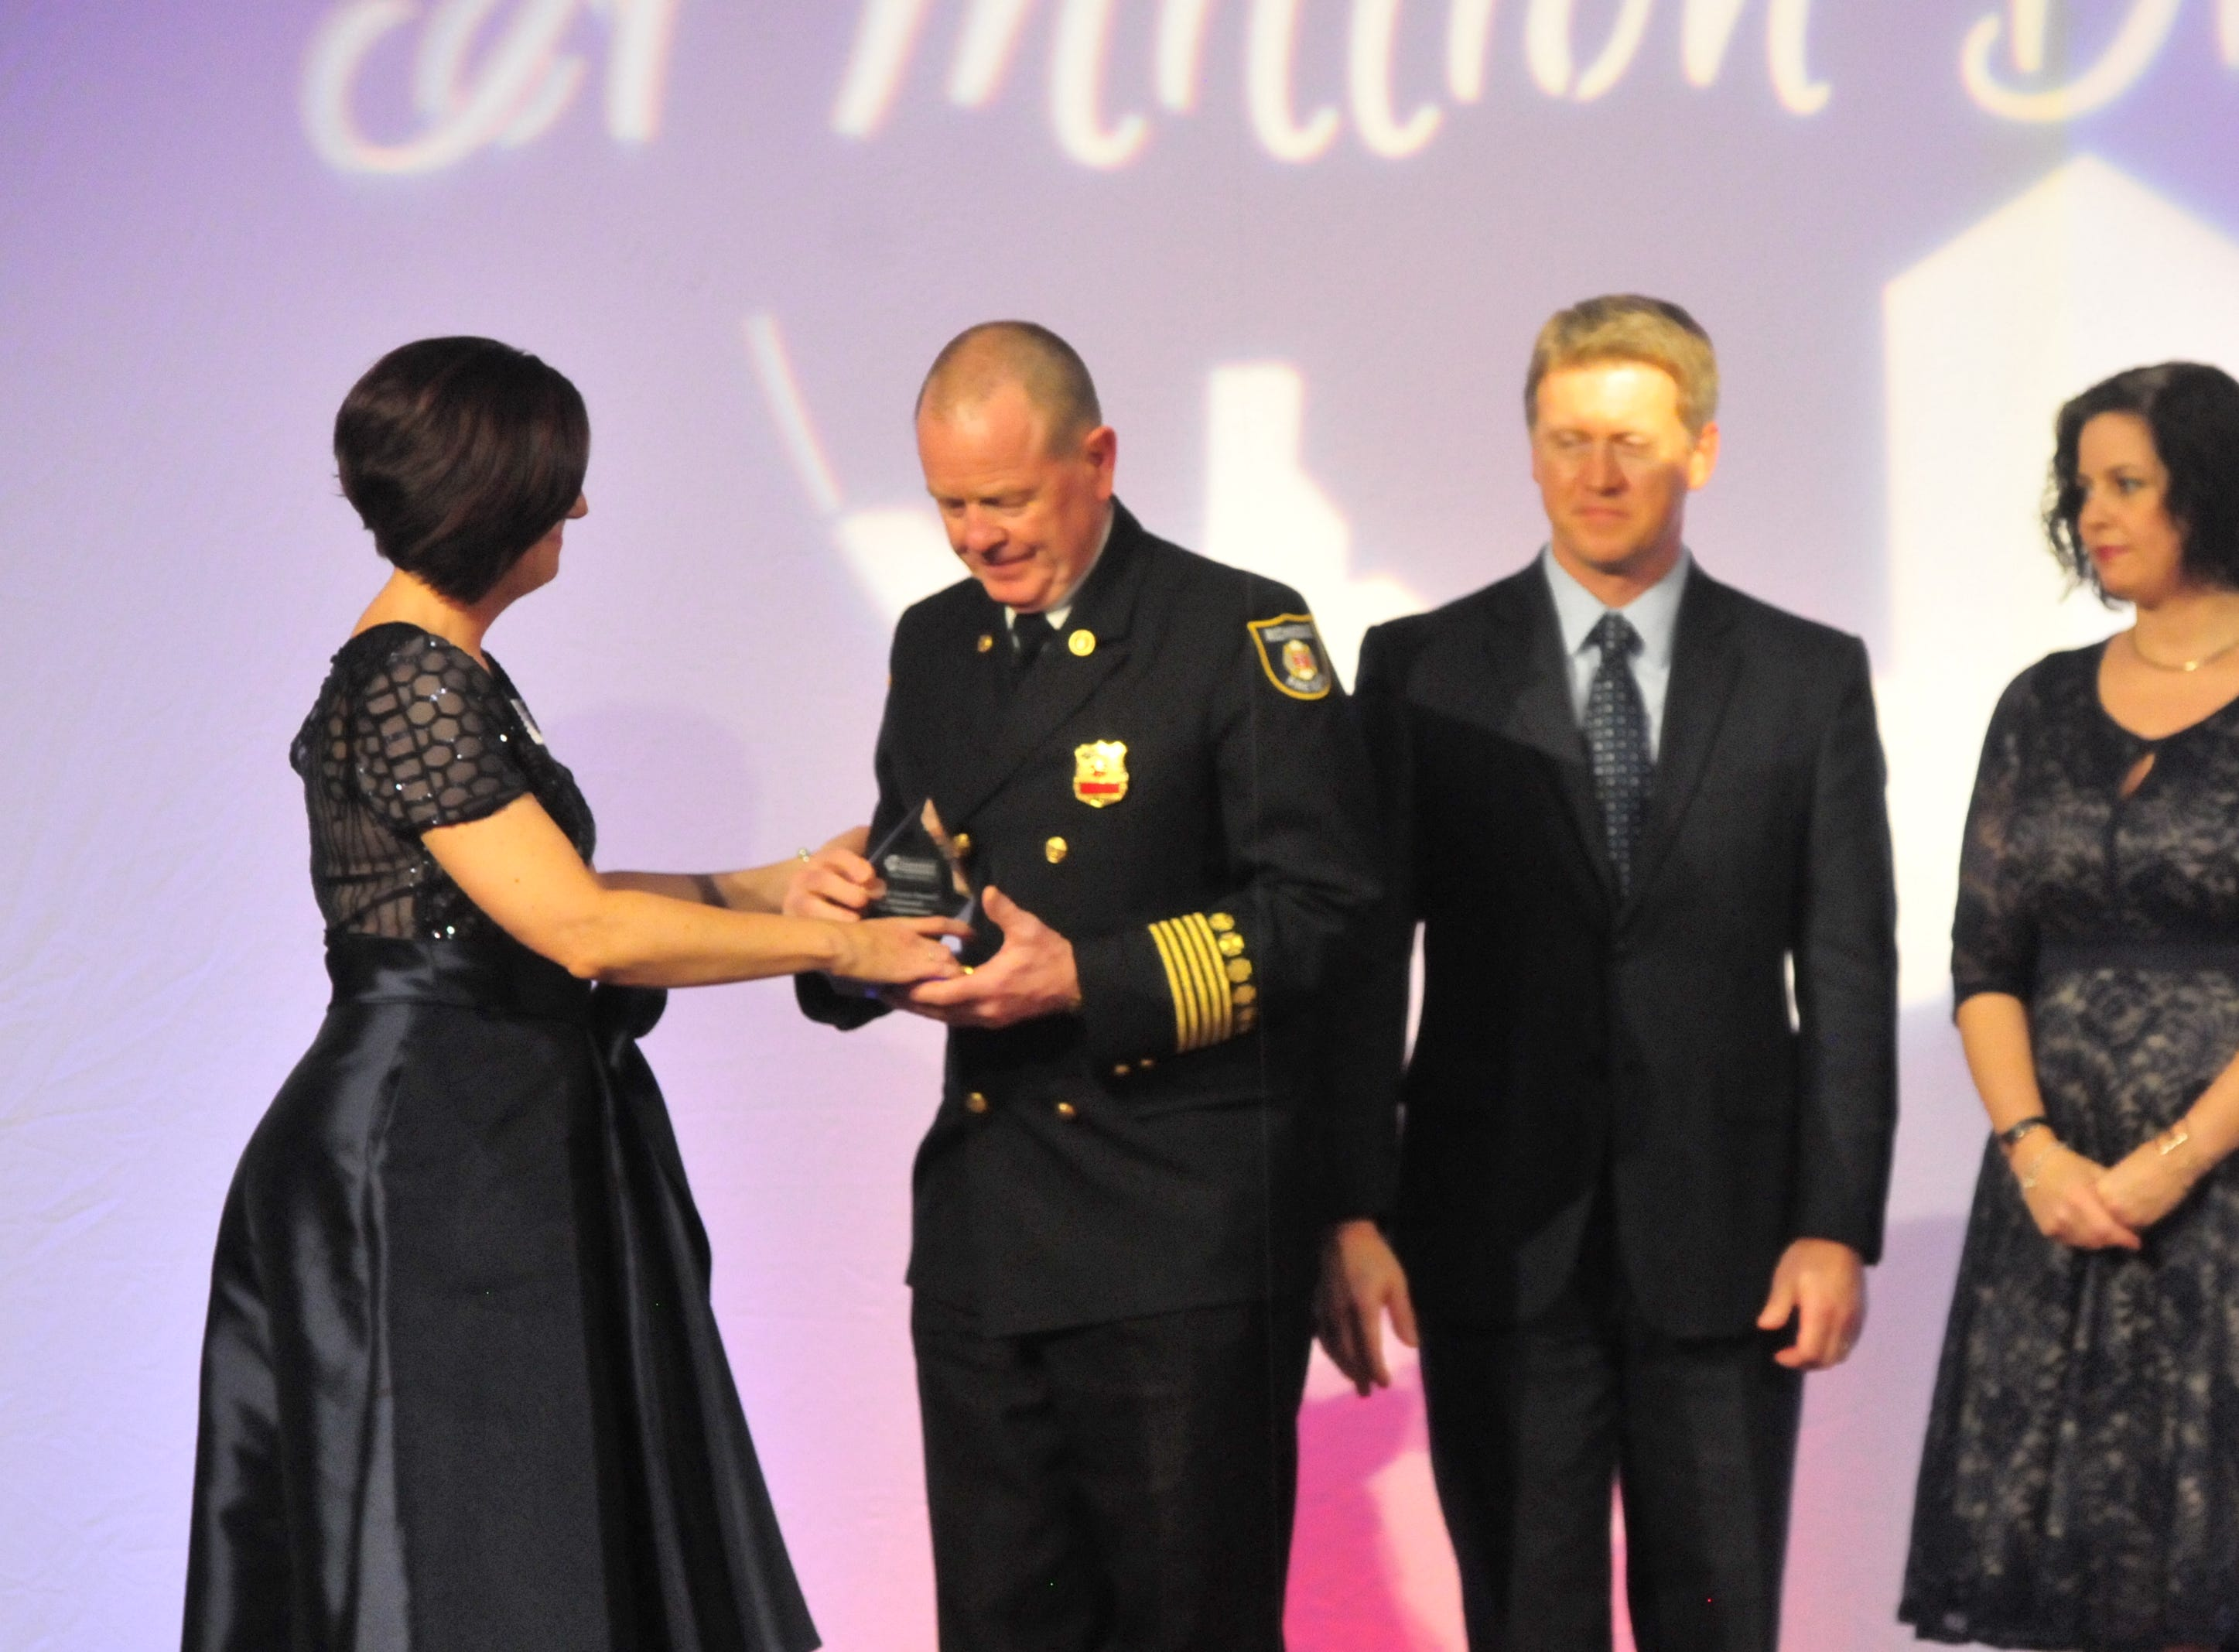 Richmond Fire Department Chief Jerry Purcell accepts the award for Emergency Services Professional of the Year.